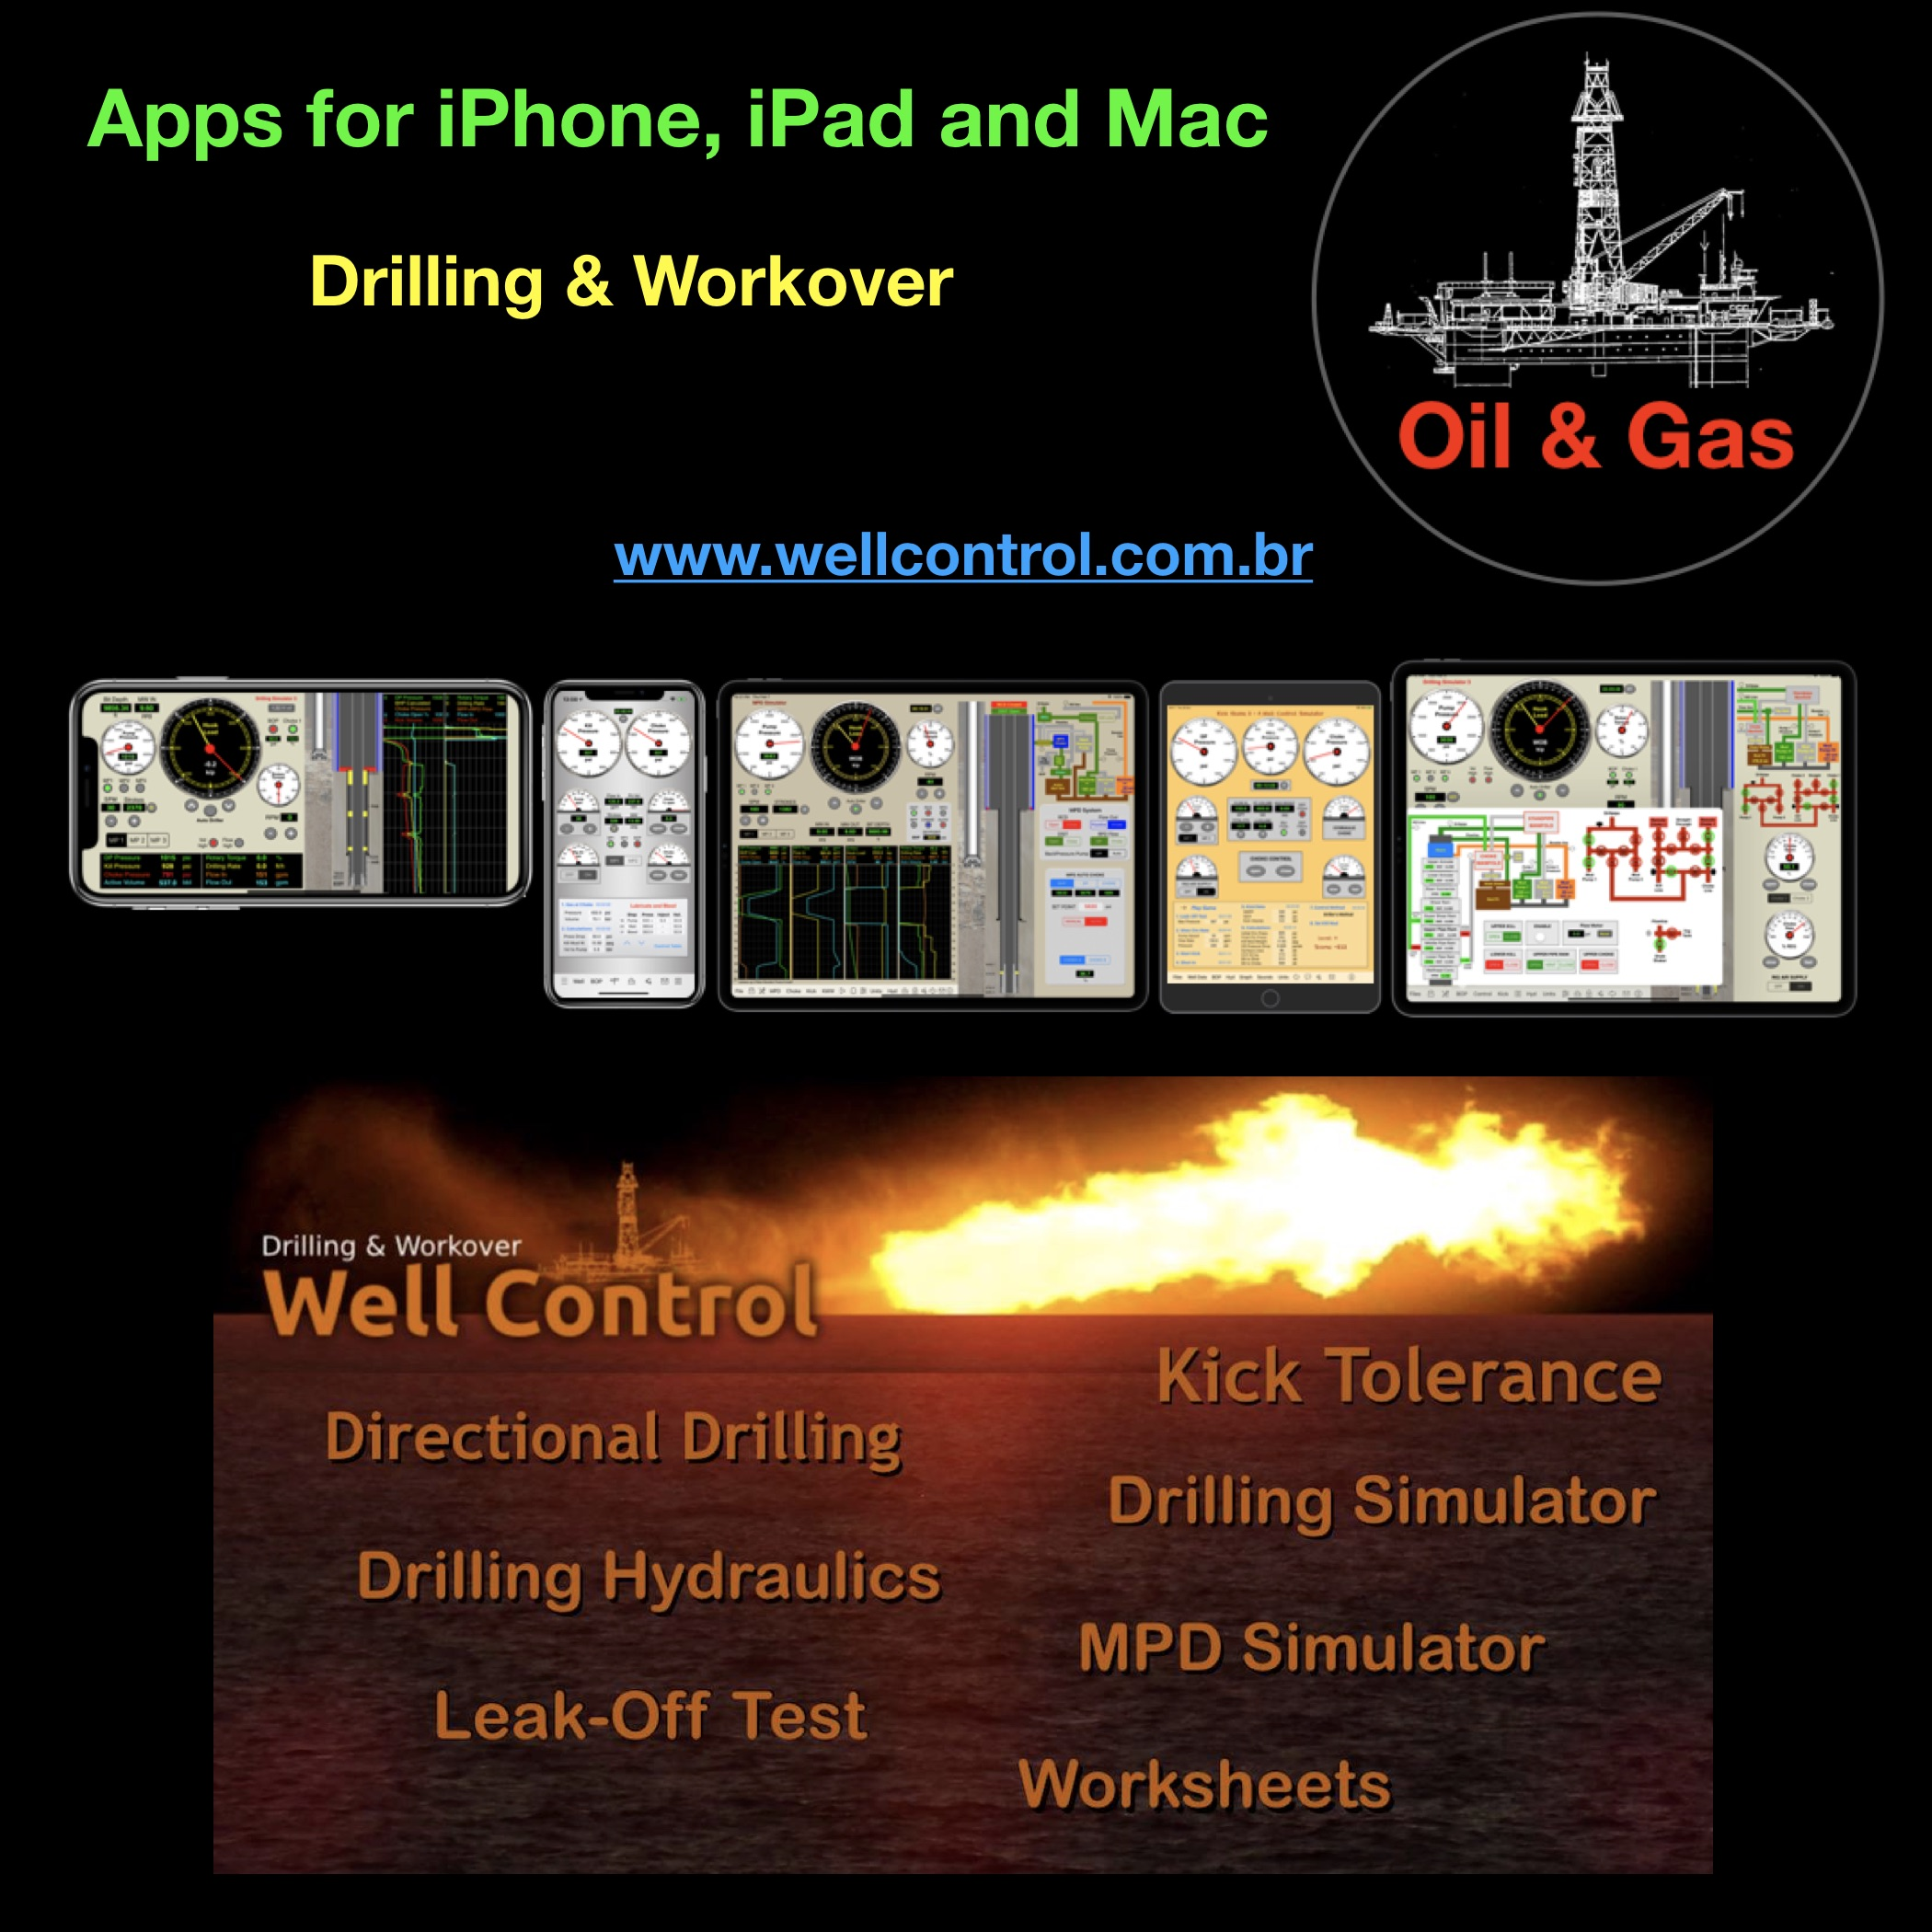 Wellcontrol_Apps_2020_Black_verde_amarelo